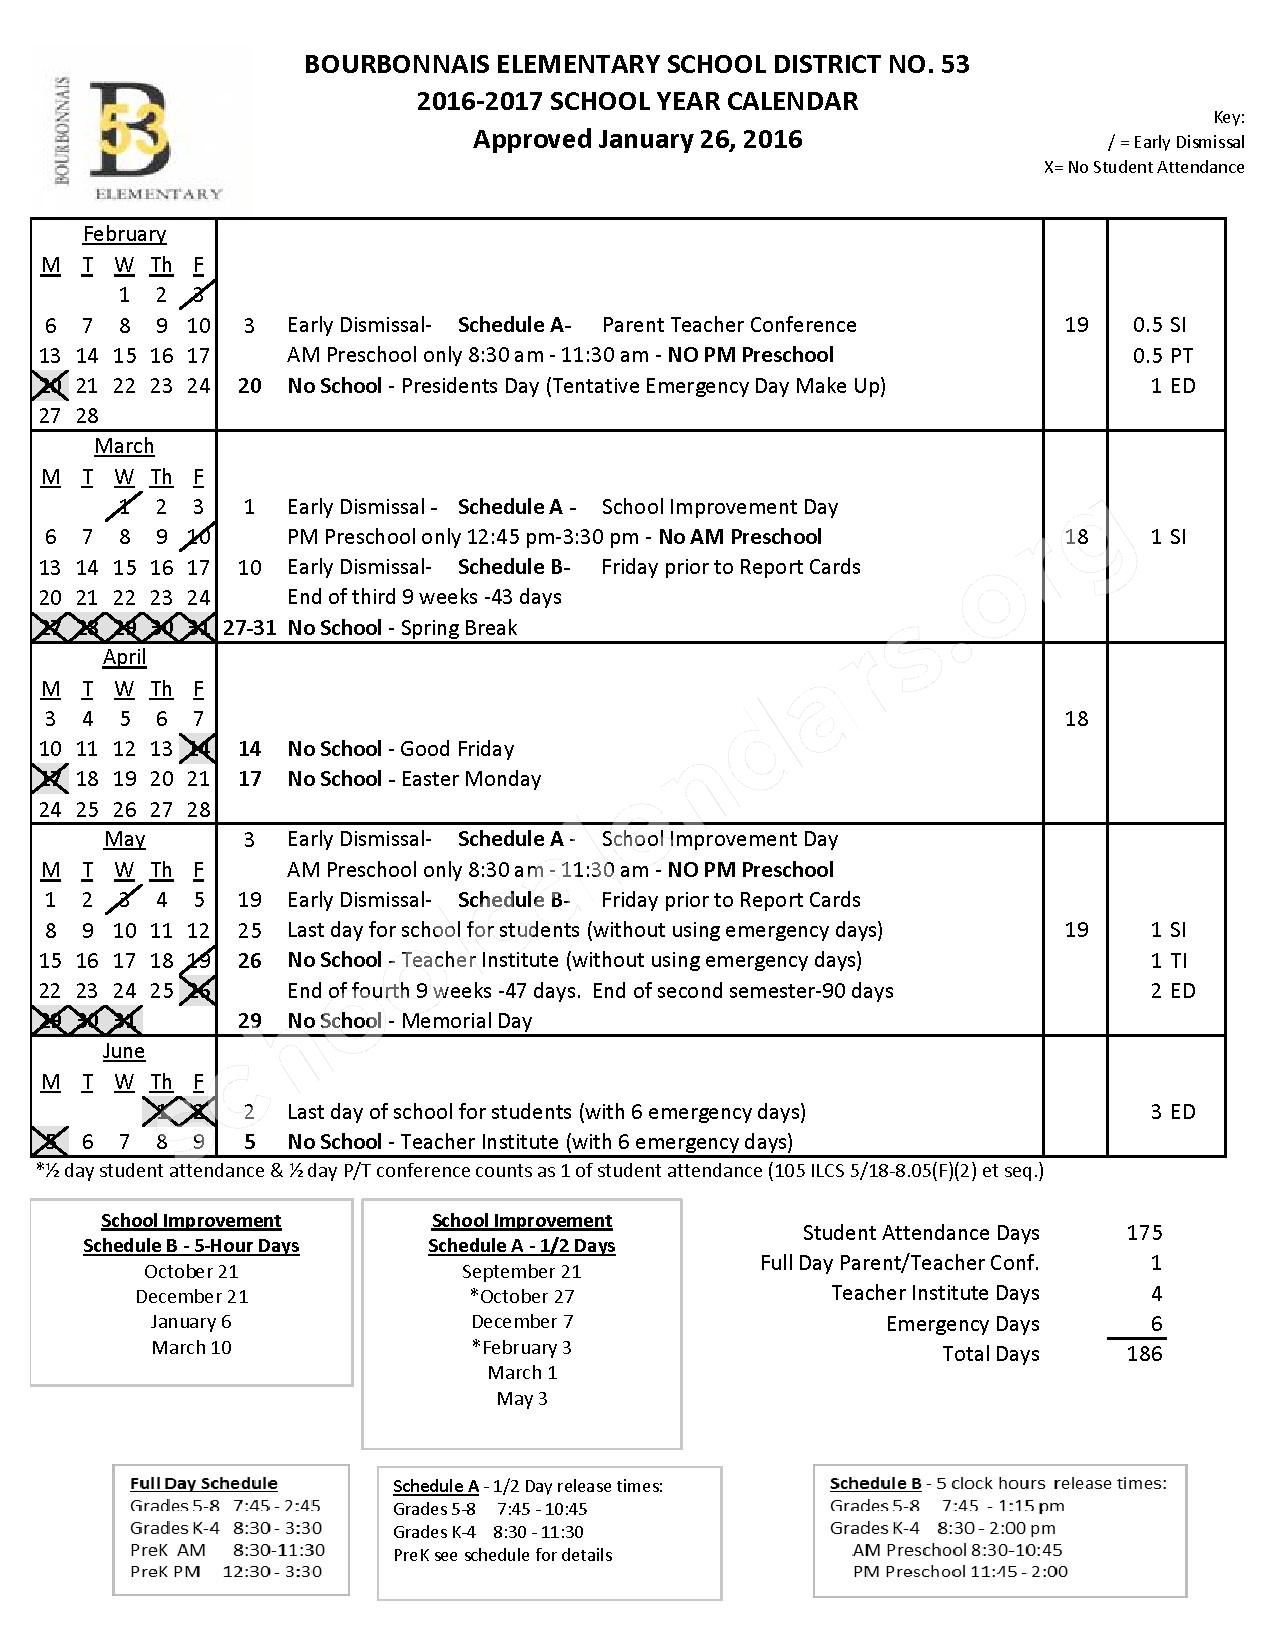 2016 - 2017 District Calendar – Bourbonnais Elementary School District 53 – page 2